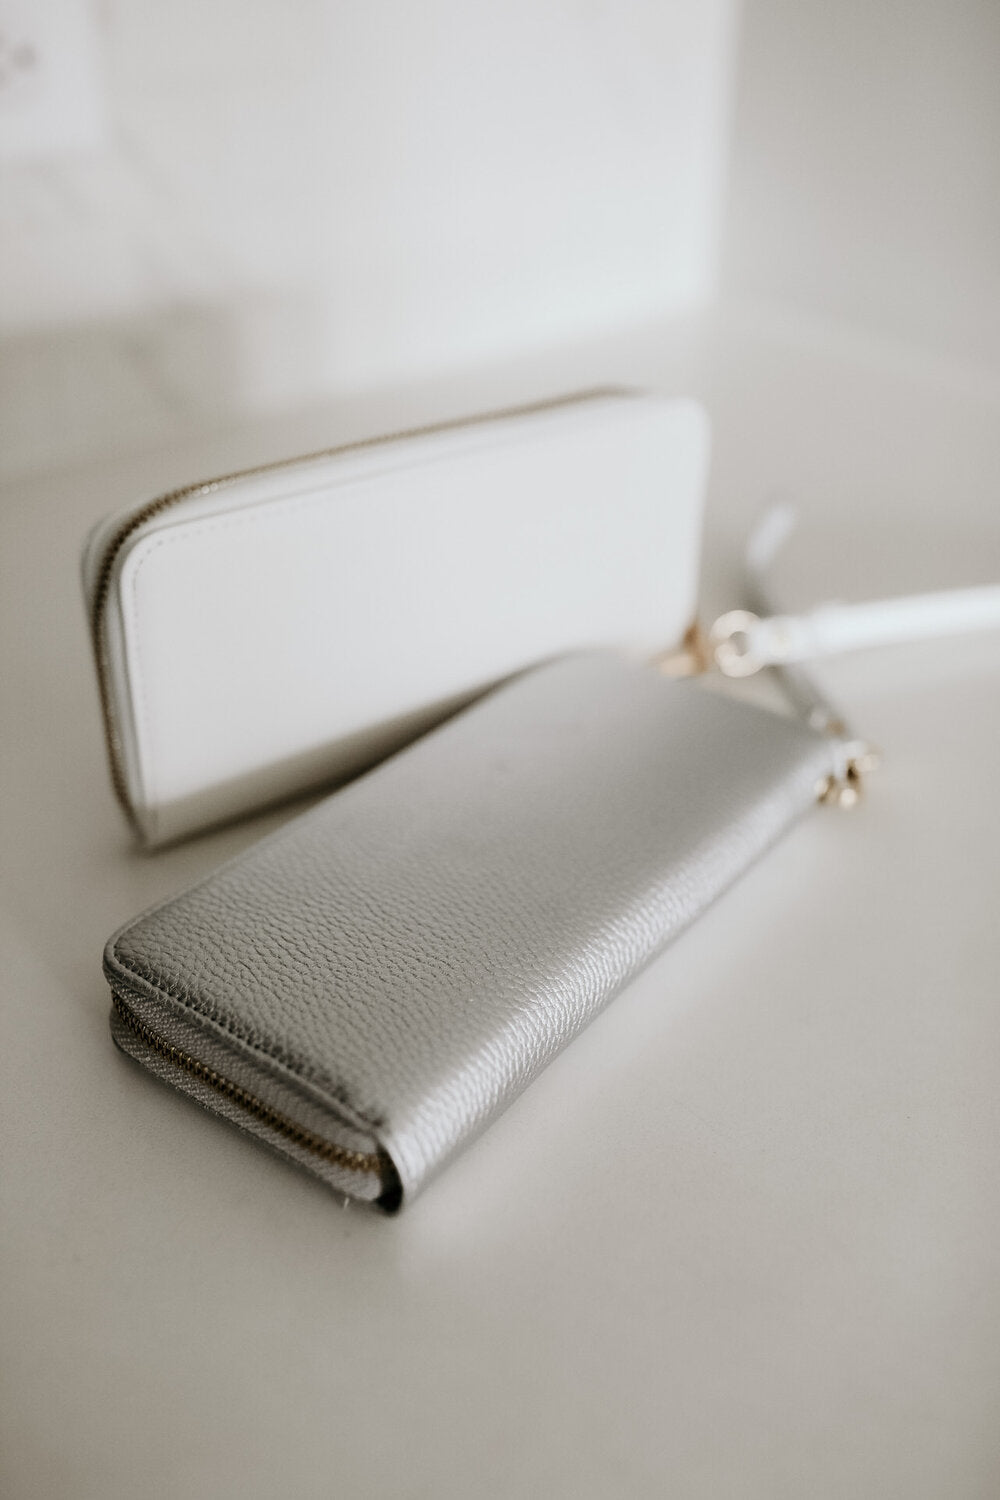 Leather Wallet/Wristlet/Clutch in 2 Colors